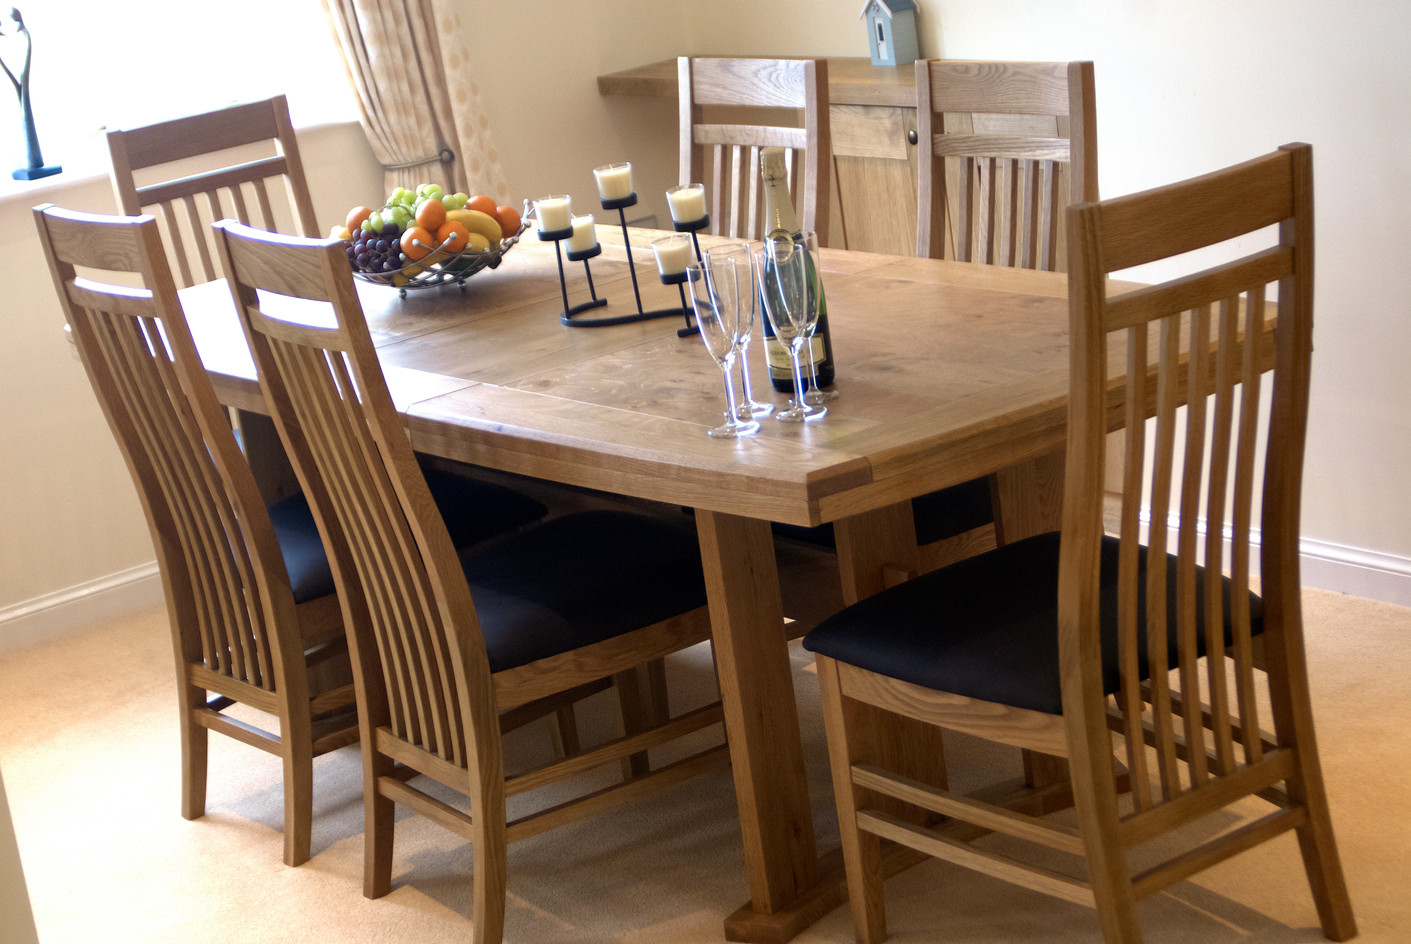 Dining table a high chair can also be provided